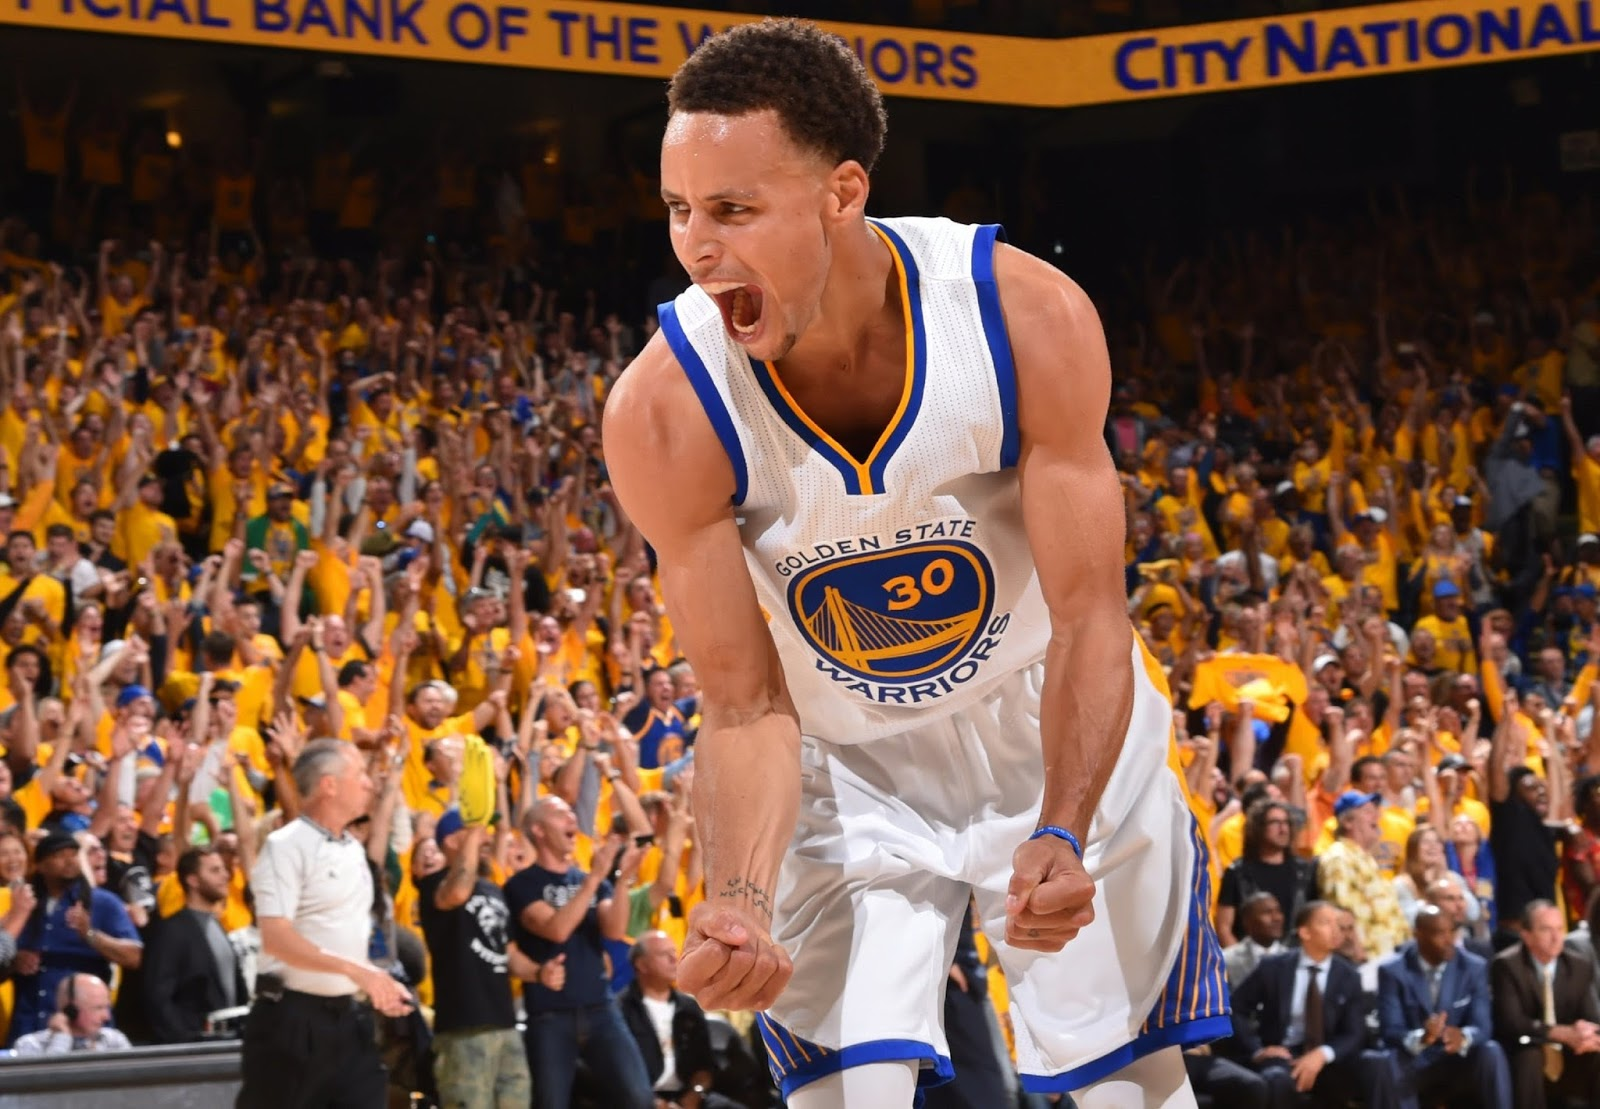 STEPHEN CURRY 8